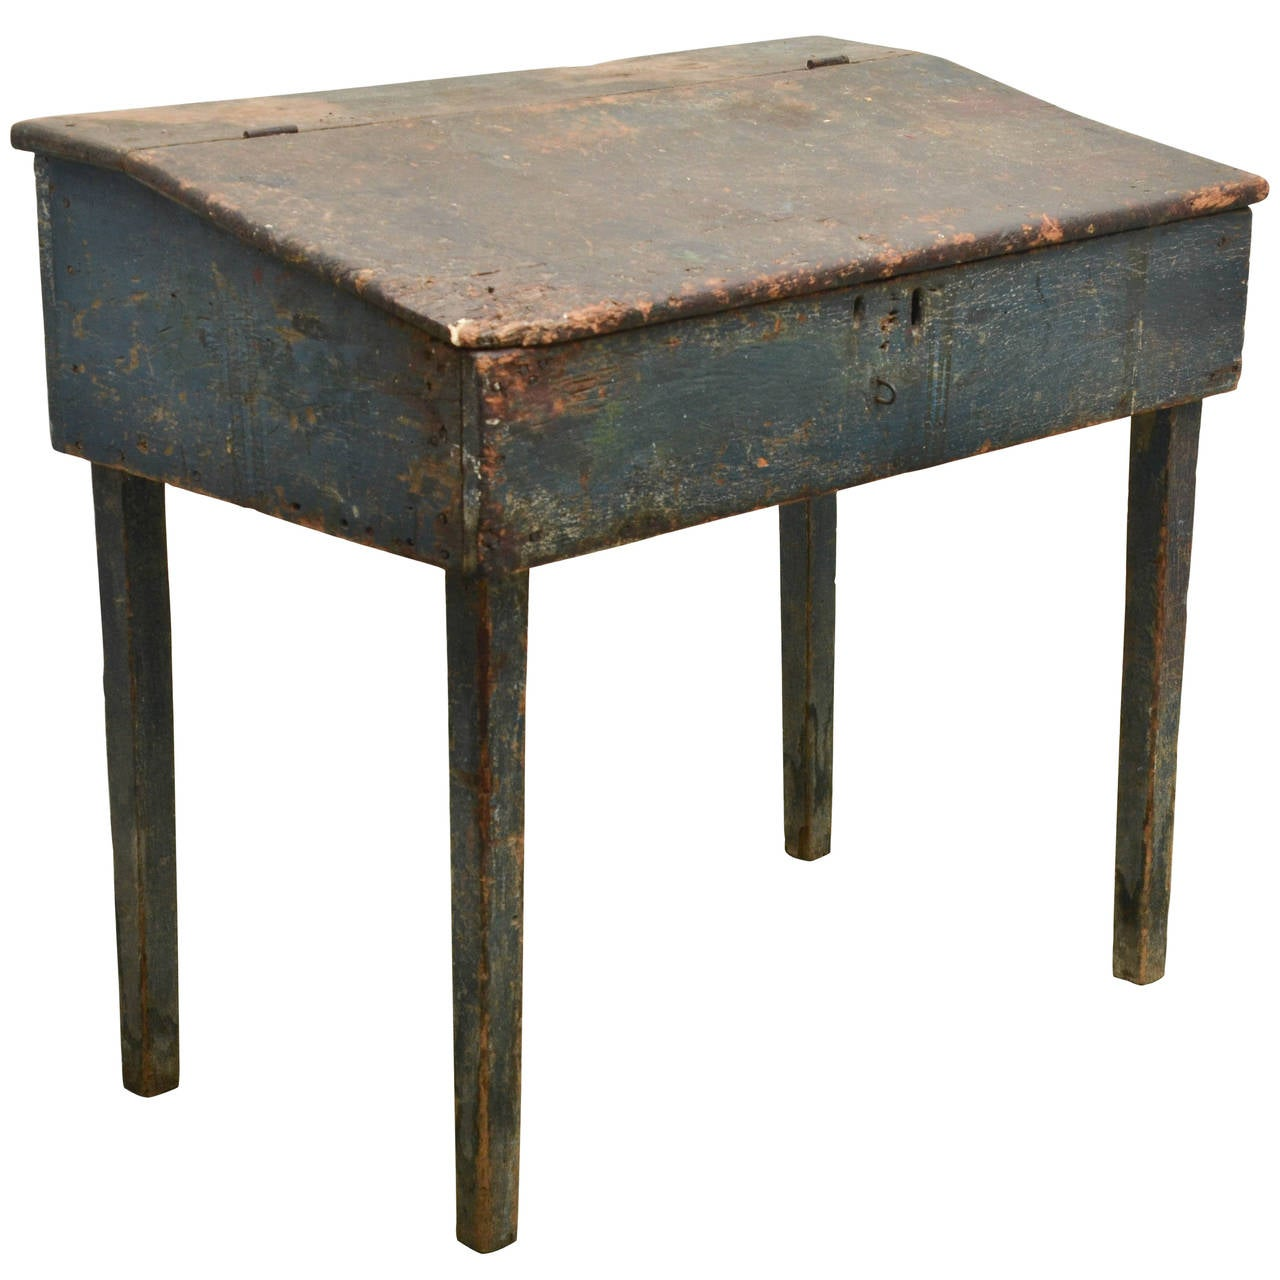 Early Primitive Desk in Original Paint For Sale at 1stdibs